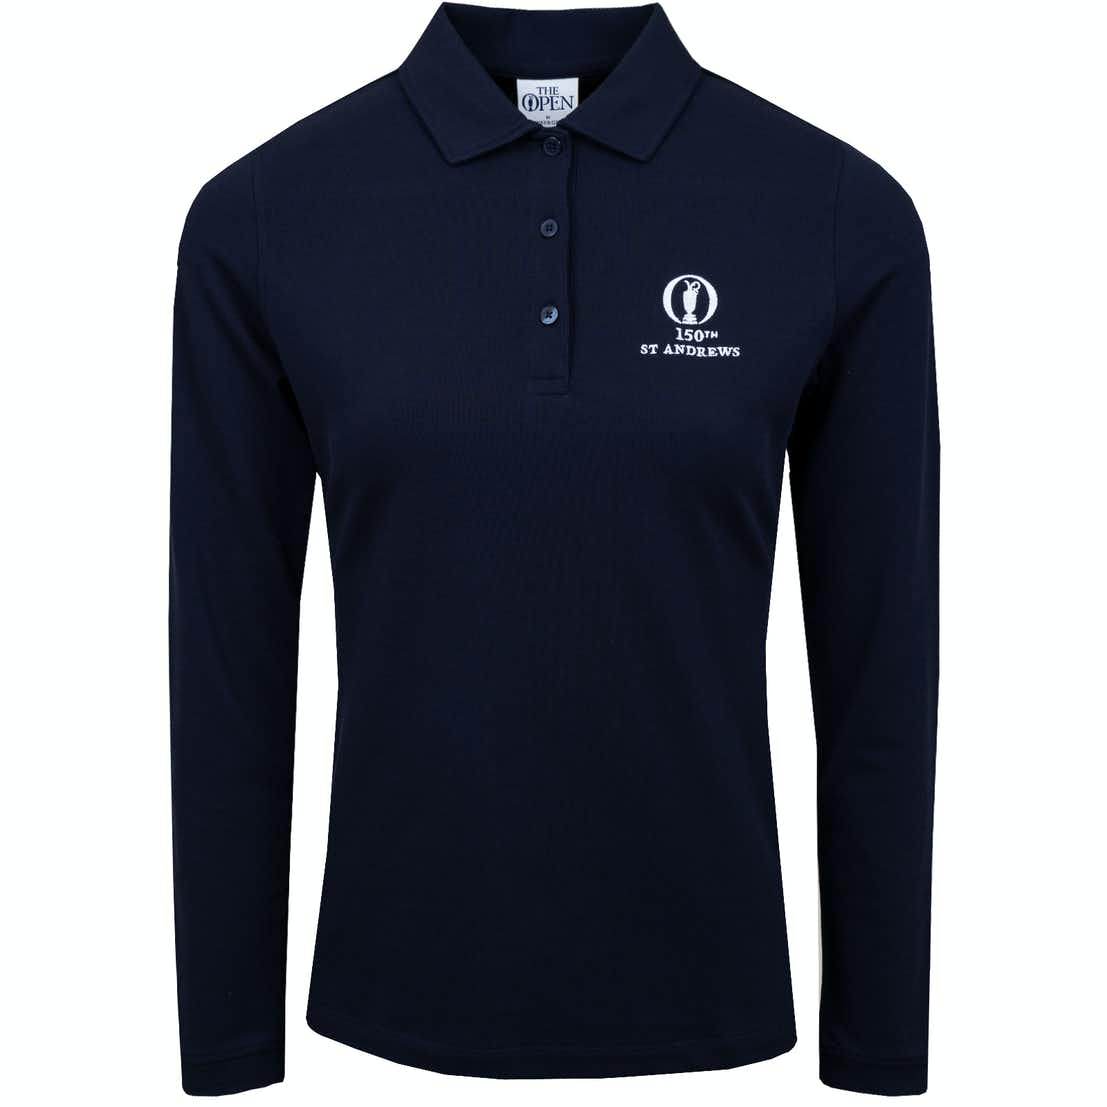 150th St Andrews Long-Sleeved Polo Shirt - Blue